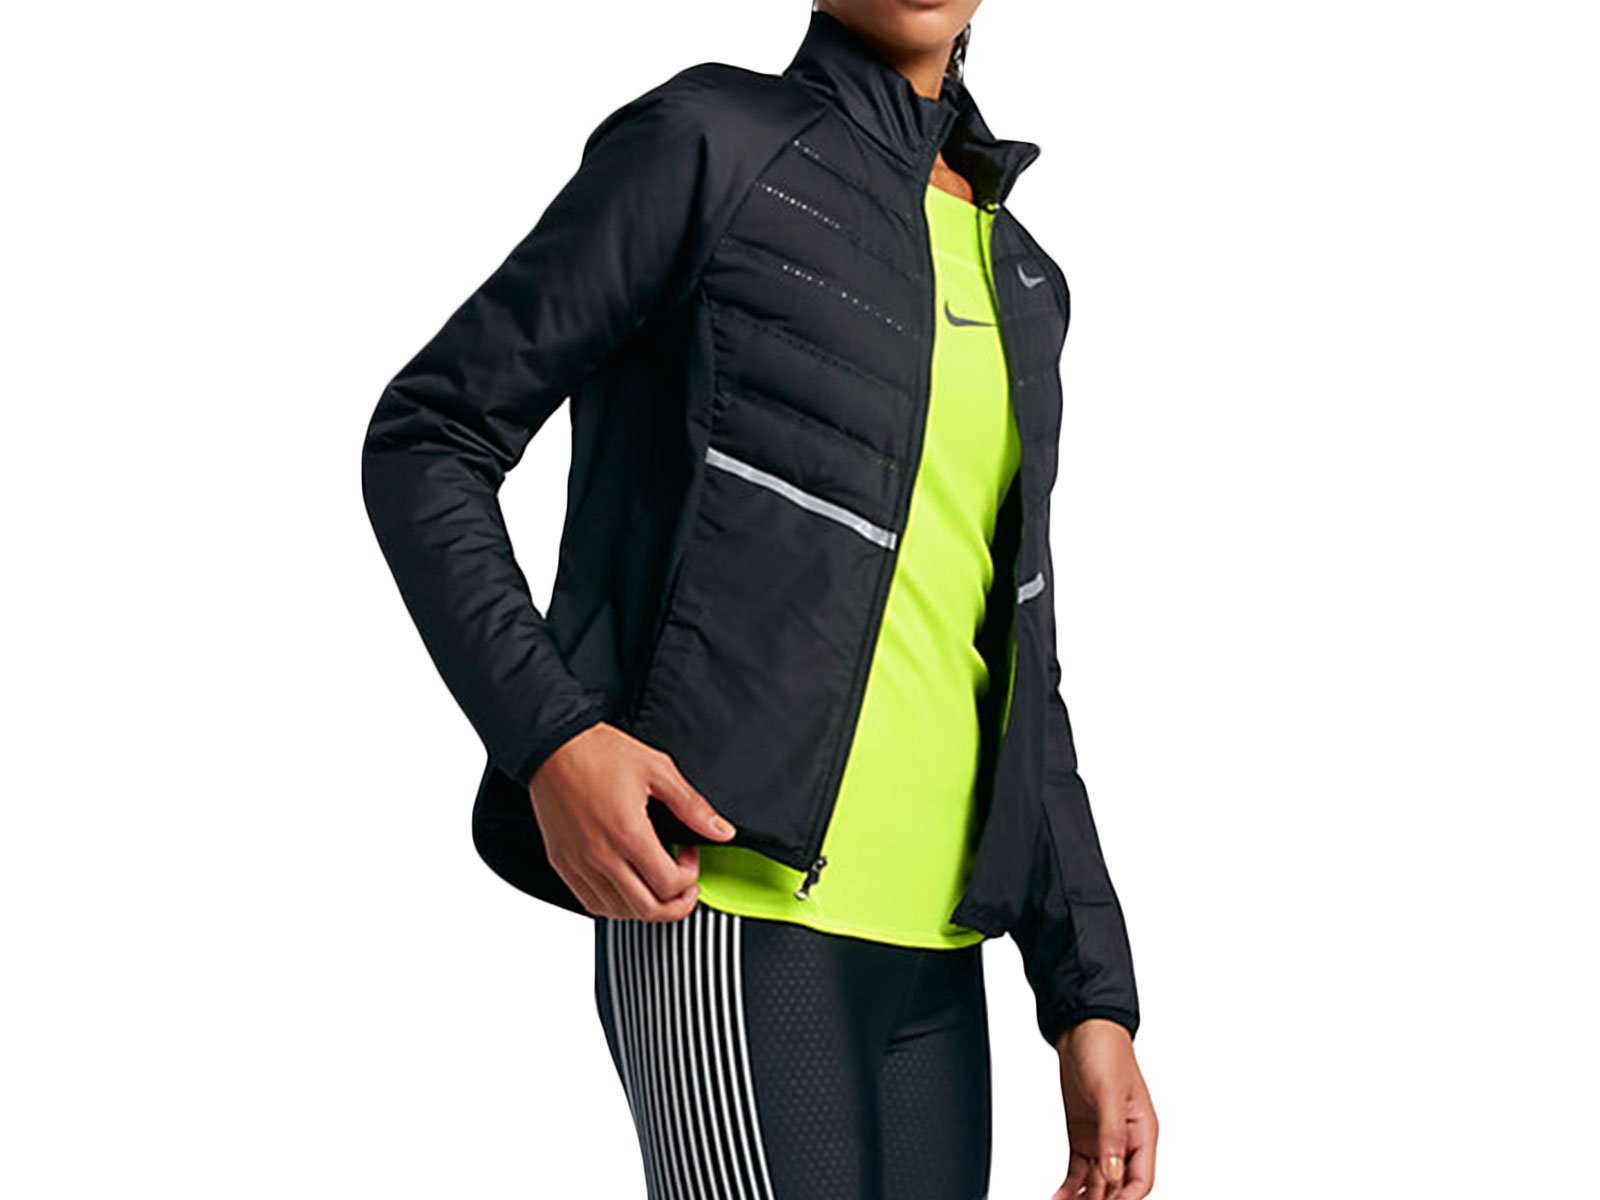 Nike AeroLoft Women's Running Jacket (Medium, Black/Reflective Silver) by NIKE